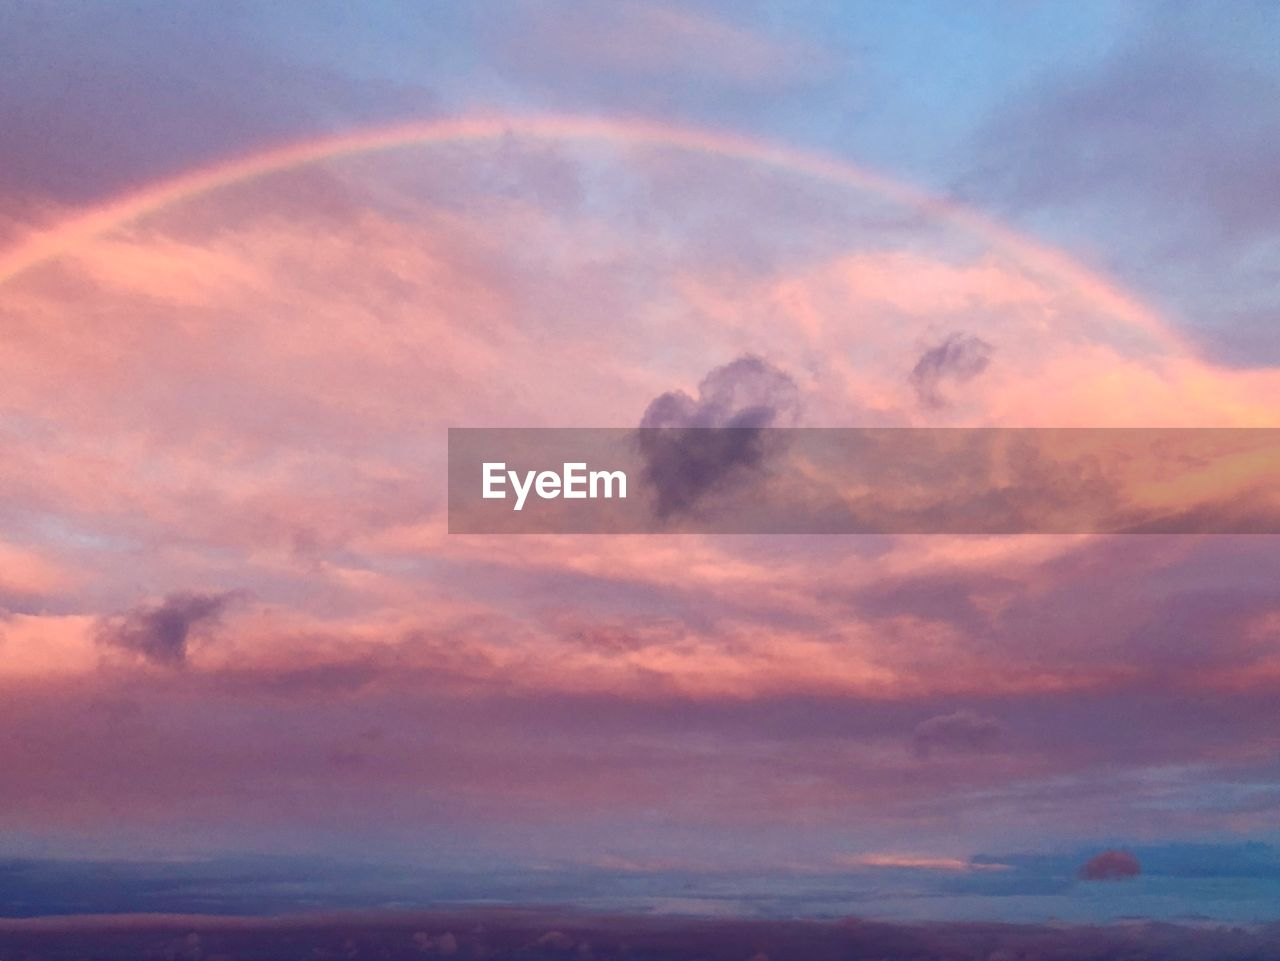 cloud - sky, sky, beauty in nature, scenics - nature, tranquility, tranquil scene, sunset, no people, nature, idyllic, low angle view, orange color, dramatic sky, outdoors, backgrounds, moody sky, full frame, dusk, environment, meteorology, romantic sky